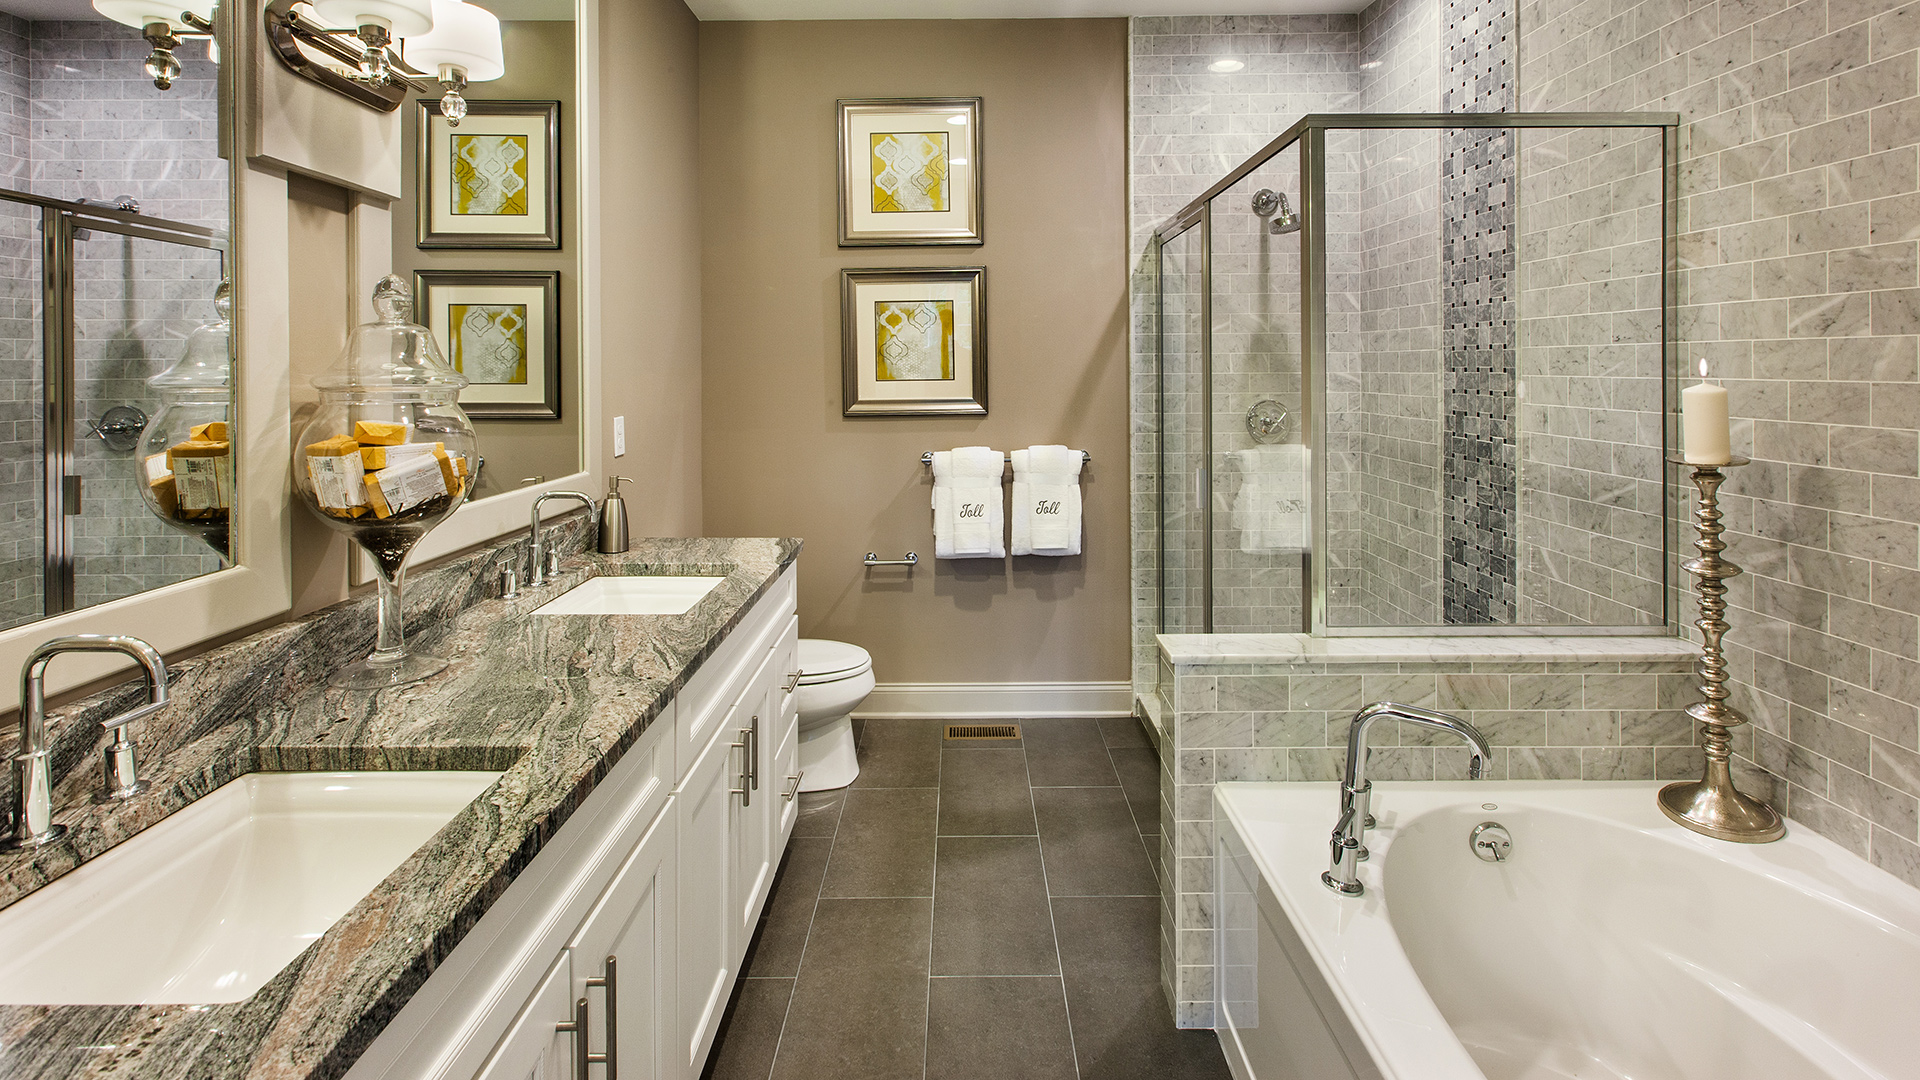 Toll brothers at valeria quick delivery home larchmont for Bathroom interior design photo gallery